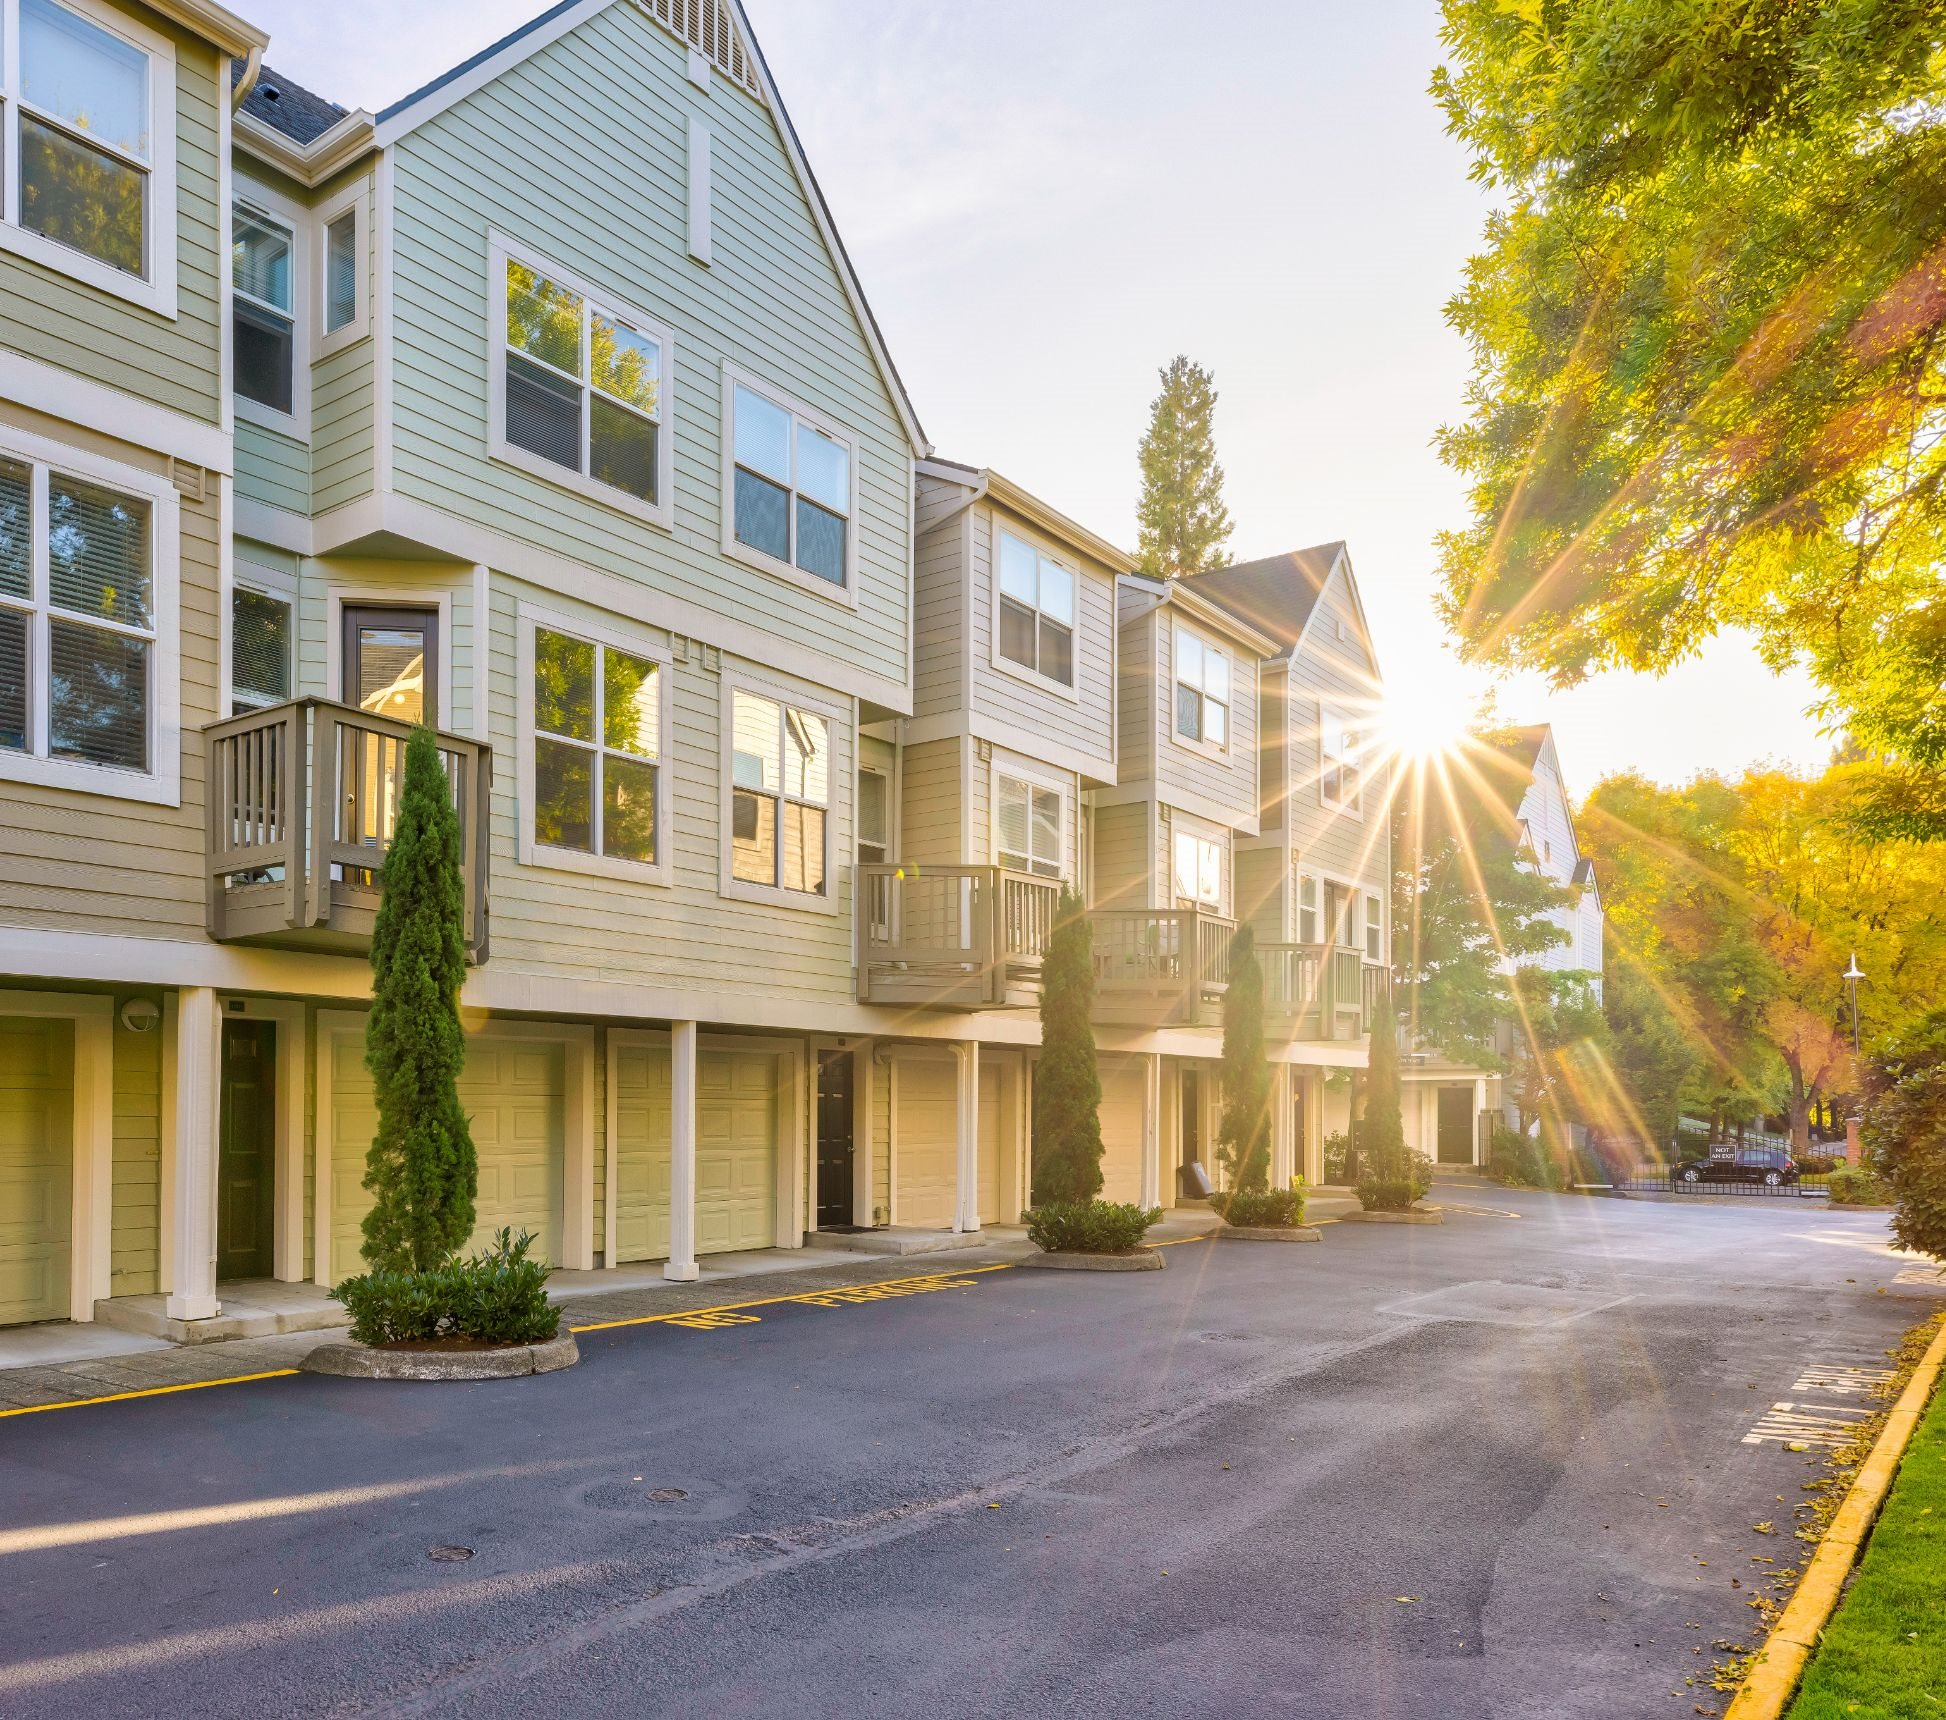 Exterior Townhomes